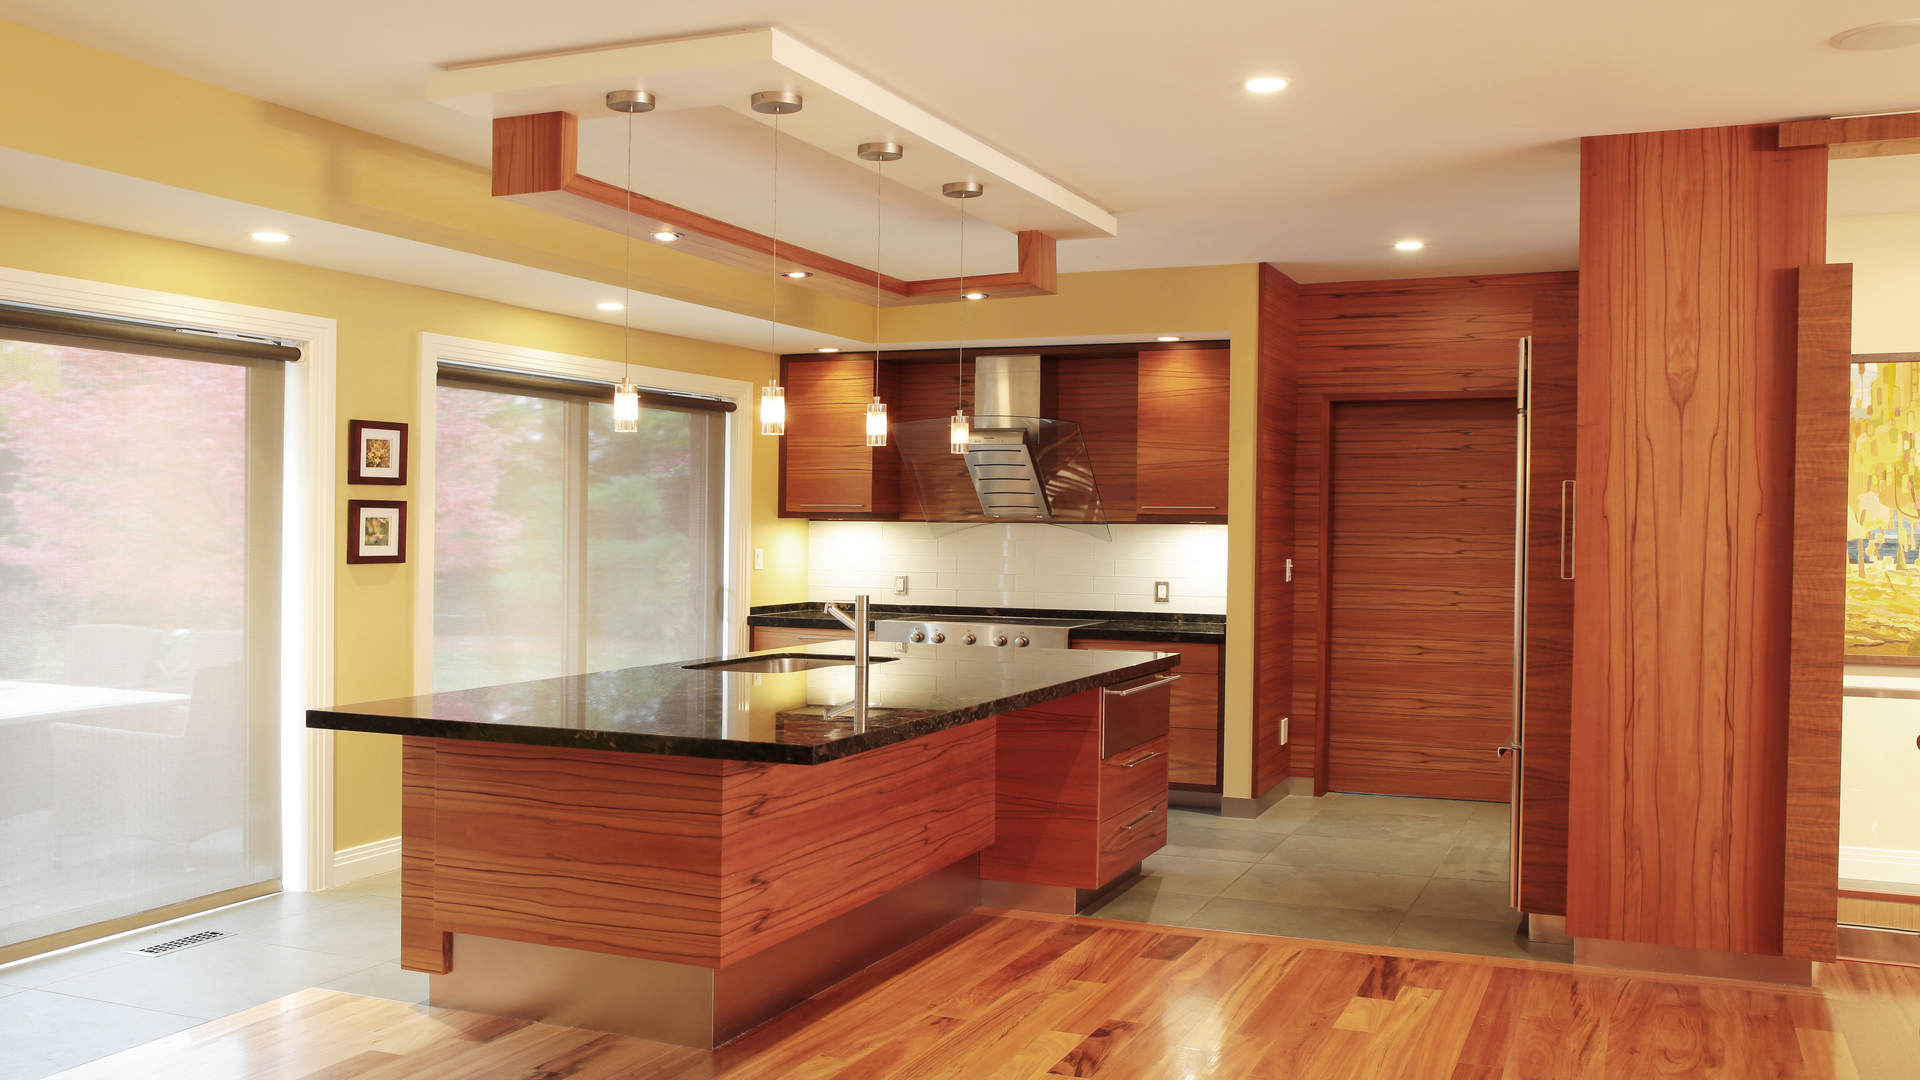 Hot Press Exotic Wood Veneering for Residential & Commercial Spaces: Walls, Shelving & Cabinetry